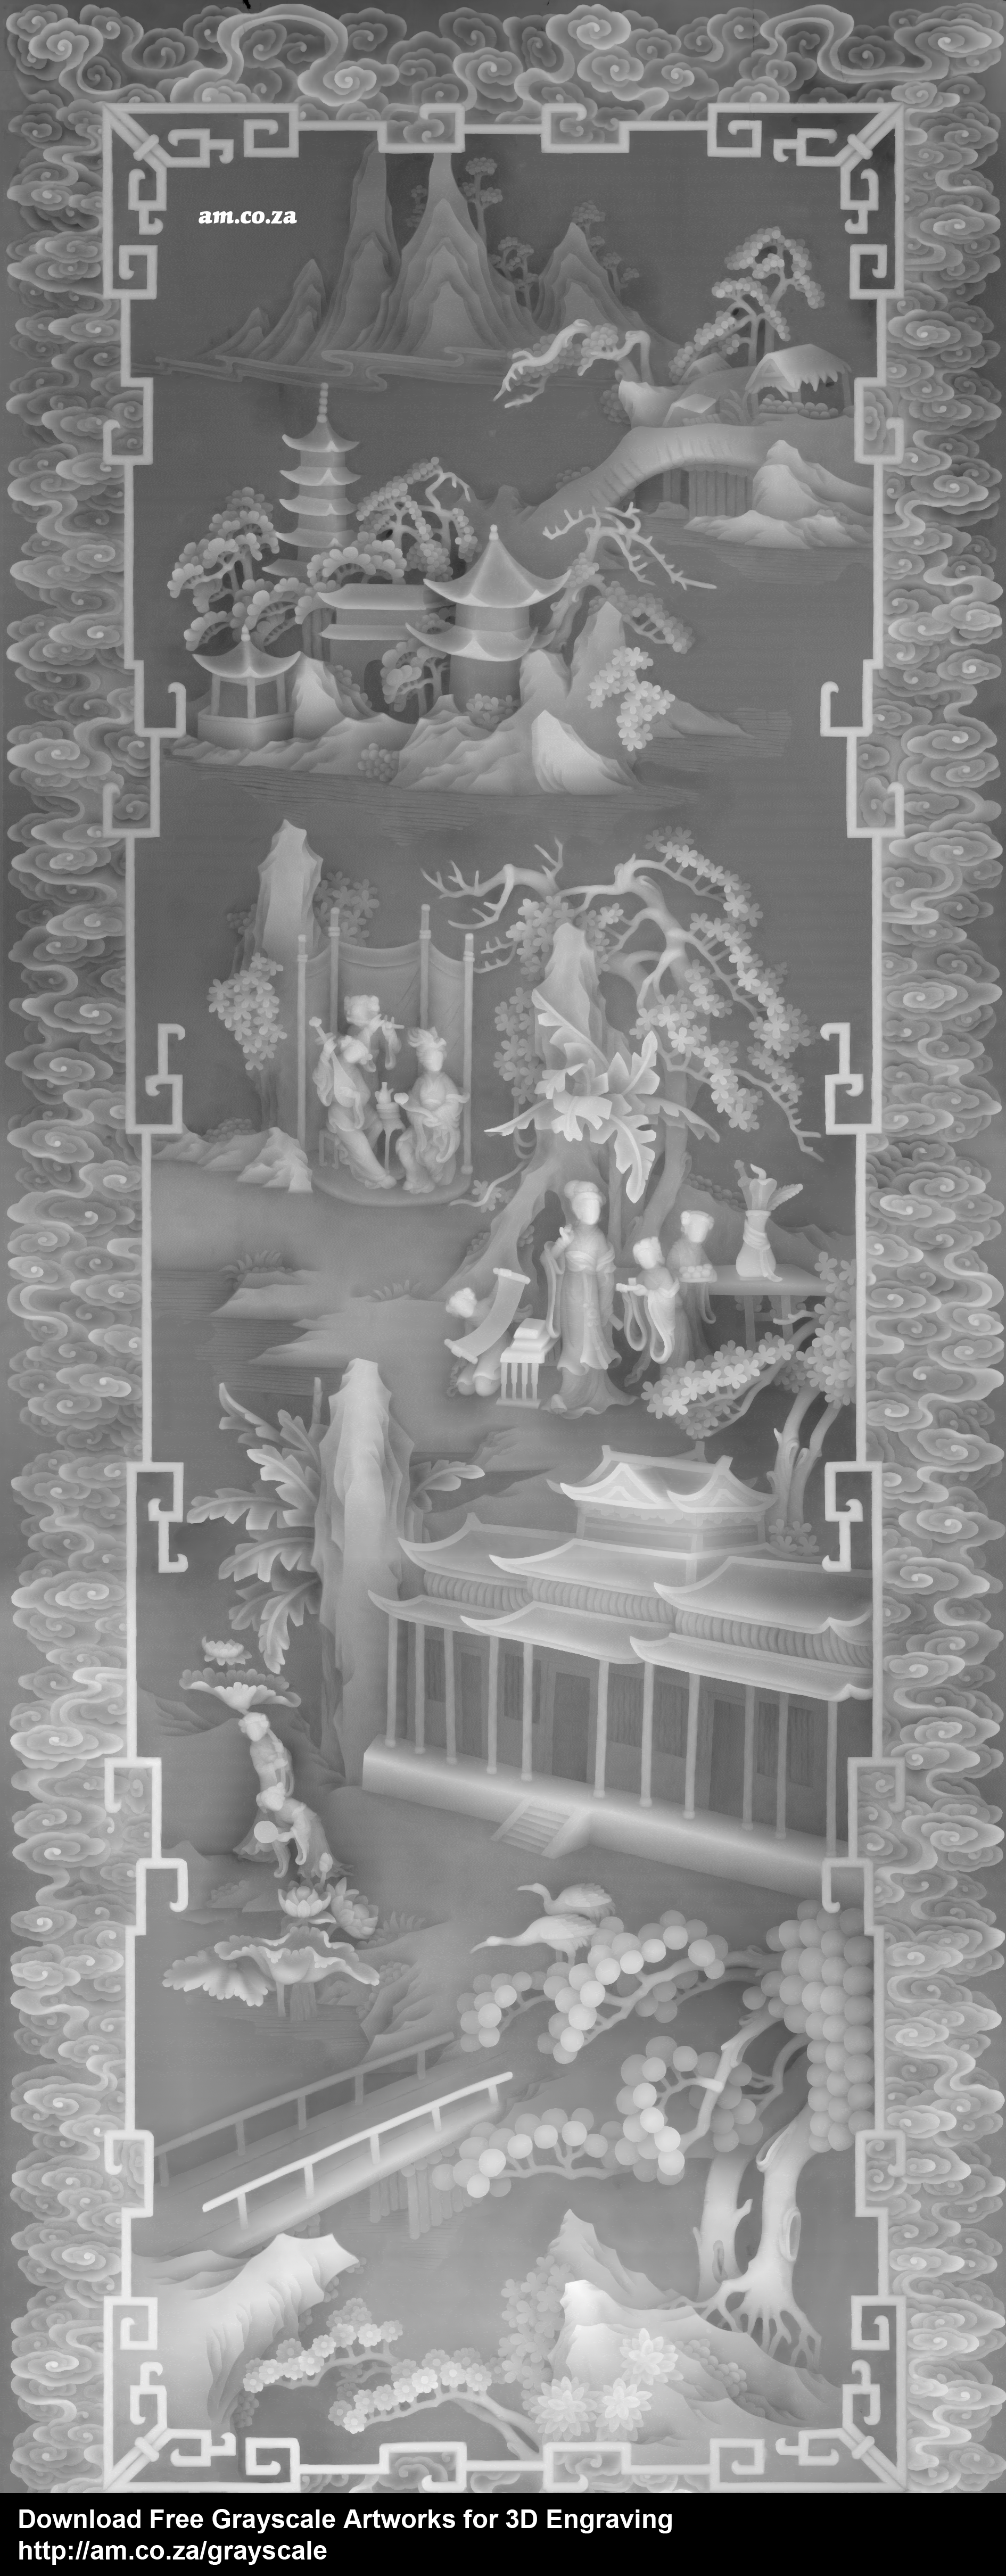 Grayscale 3d relief picture and images - Party In The Lotus Manorsize 1890 4684